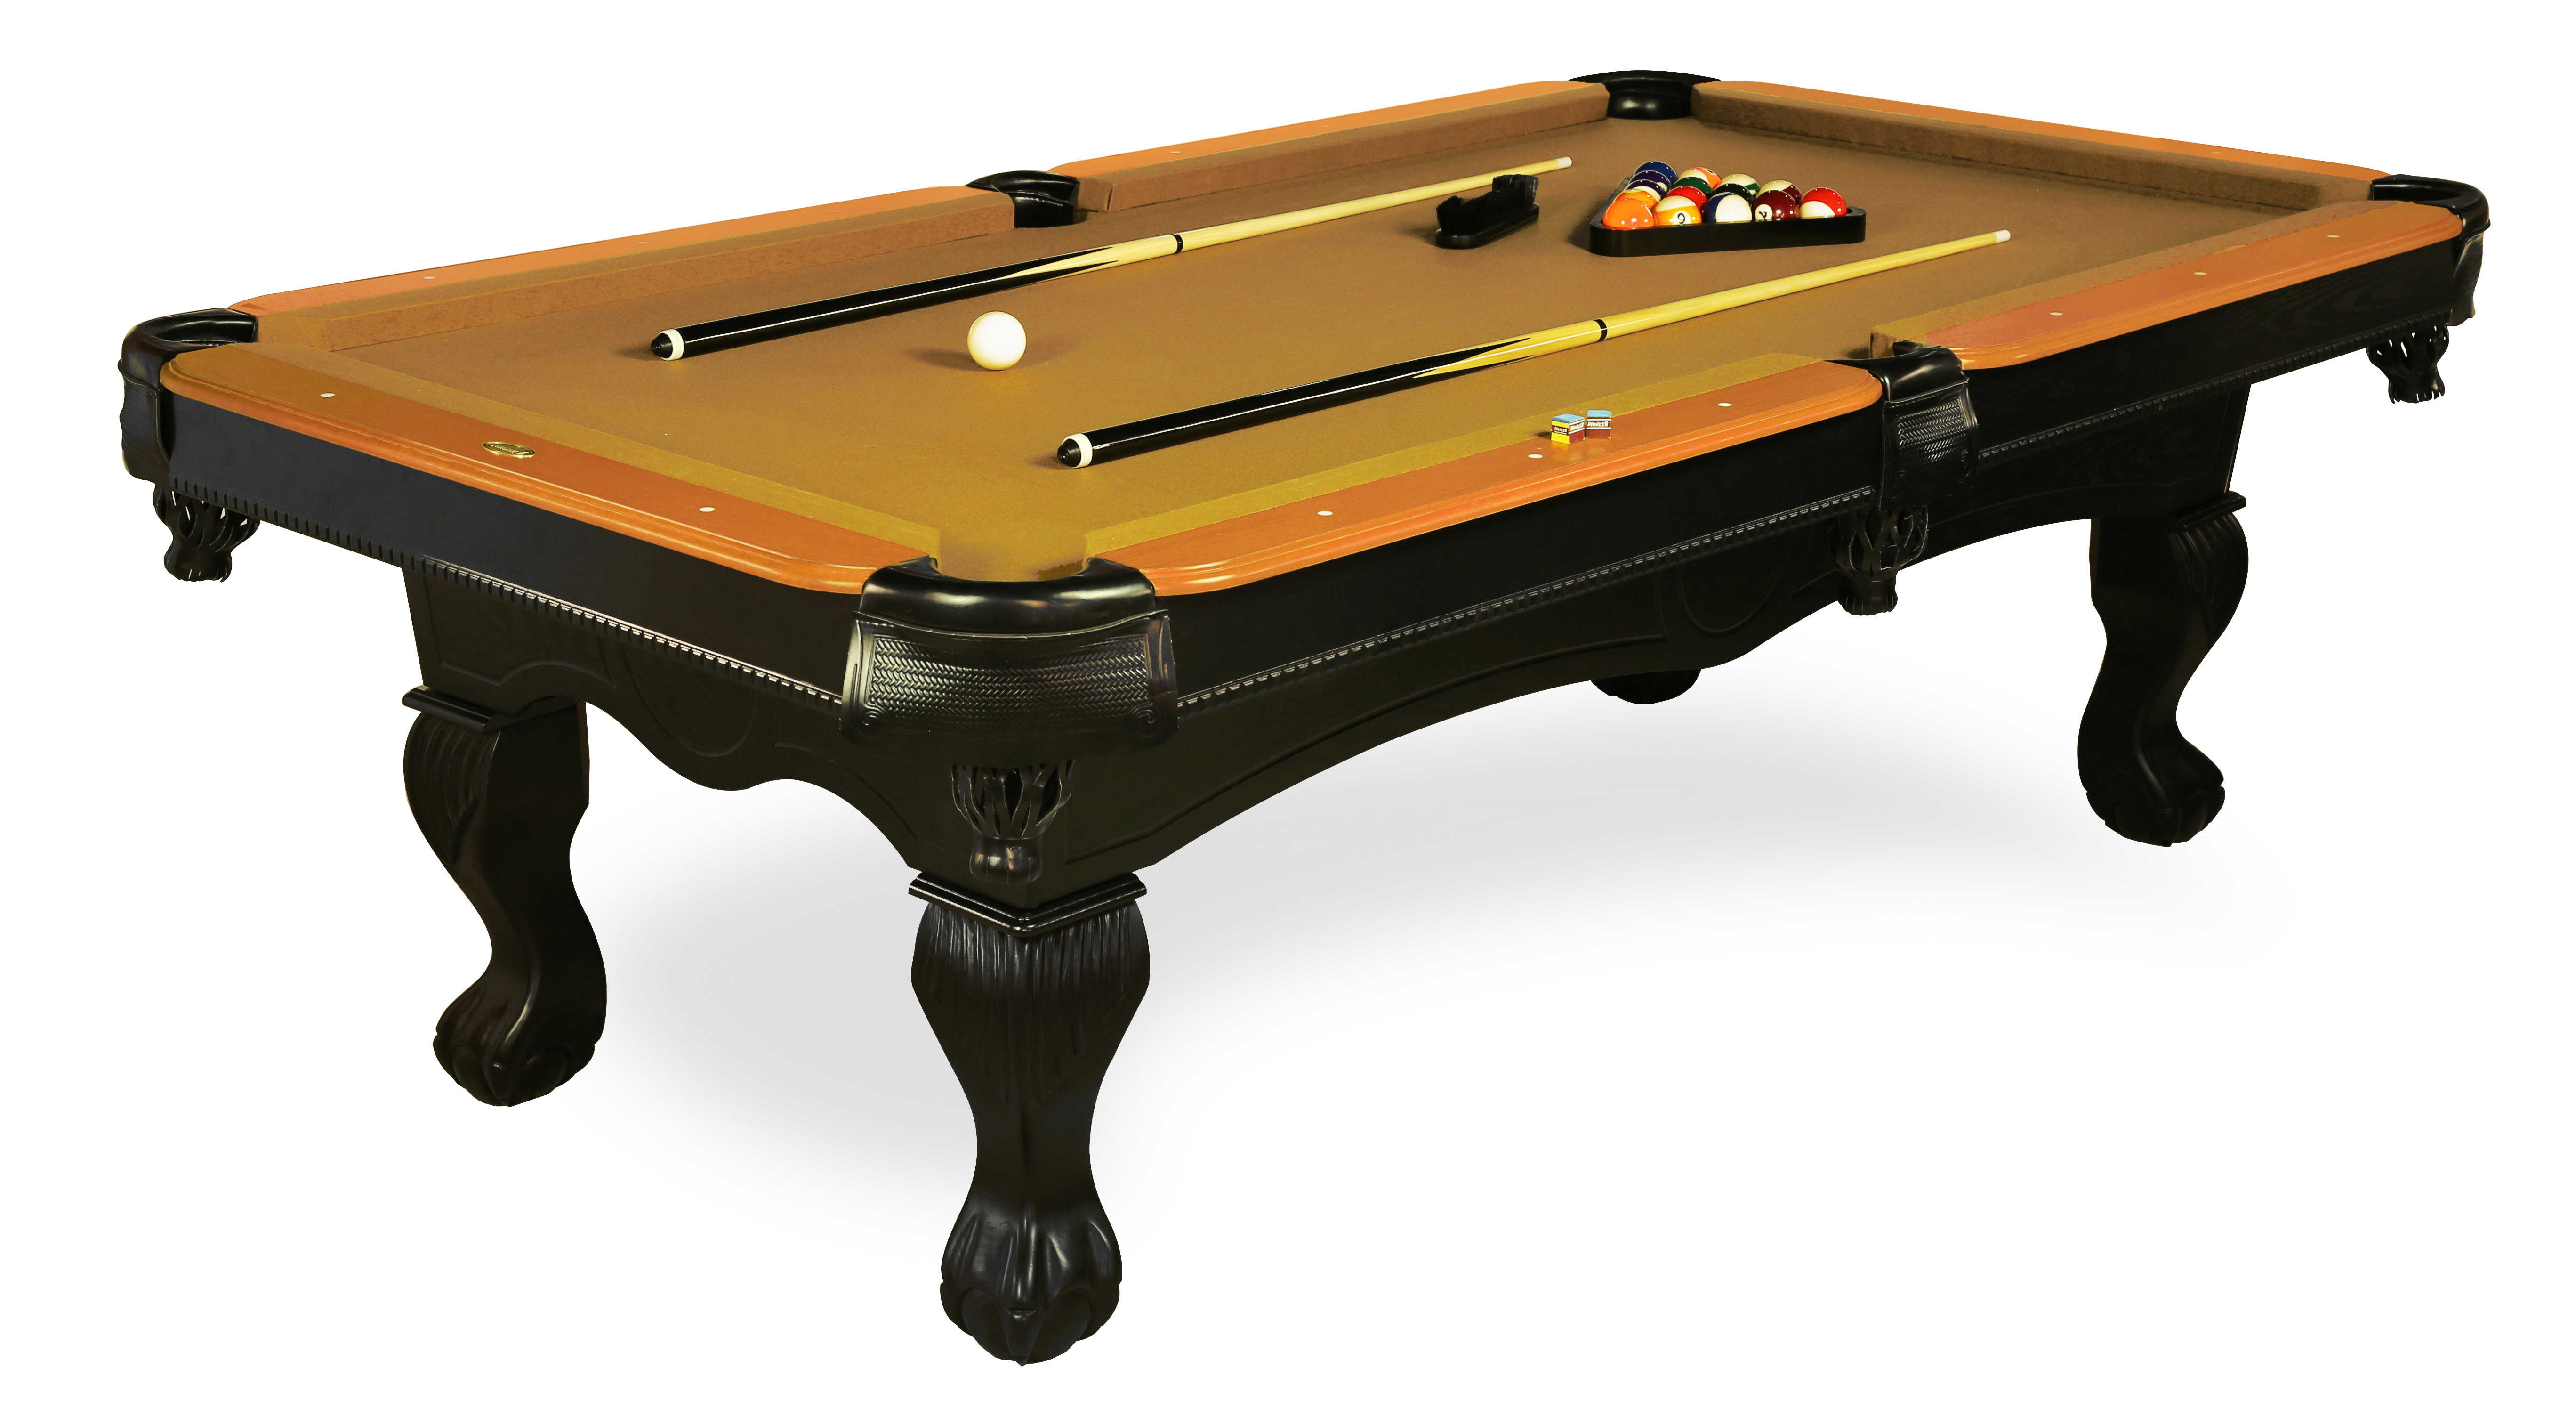 """""""""""""""Sportcraft Rutherford 96"""""""""""""""" Billiard Table Legs Box 2 of 2 *LEGS ONLY - DOES NOT INCLUDE TABLE TOP, Brown"""""""""""" im test"""